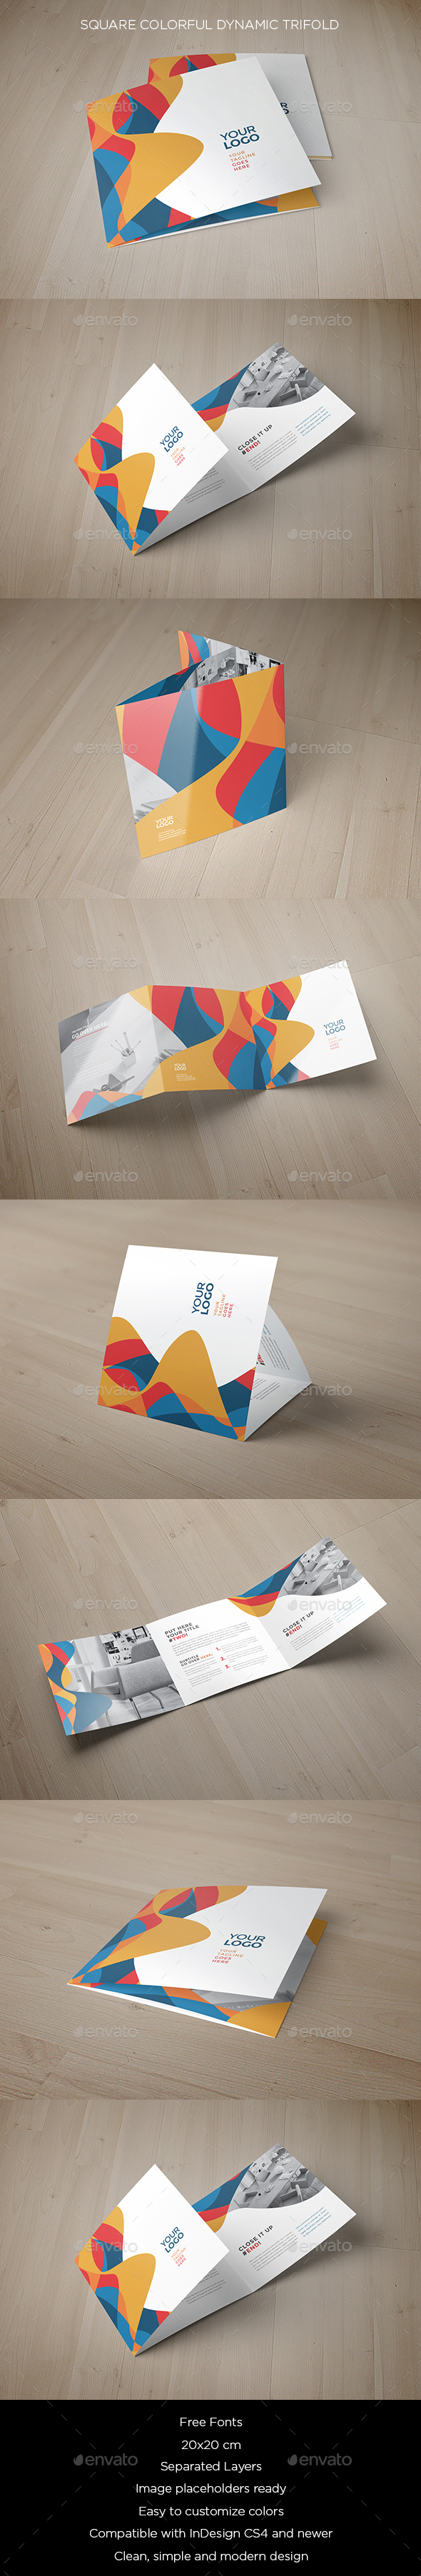 Square Colorful Dynamic Trifold - Brochures Print Templates